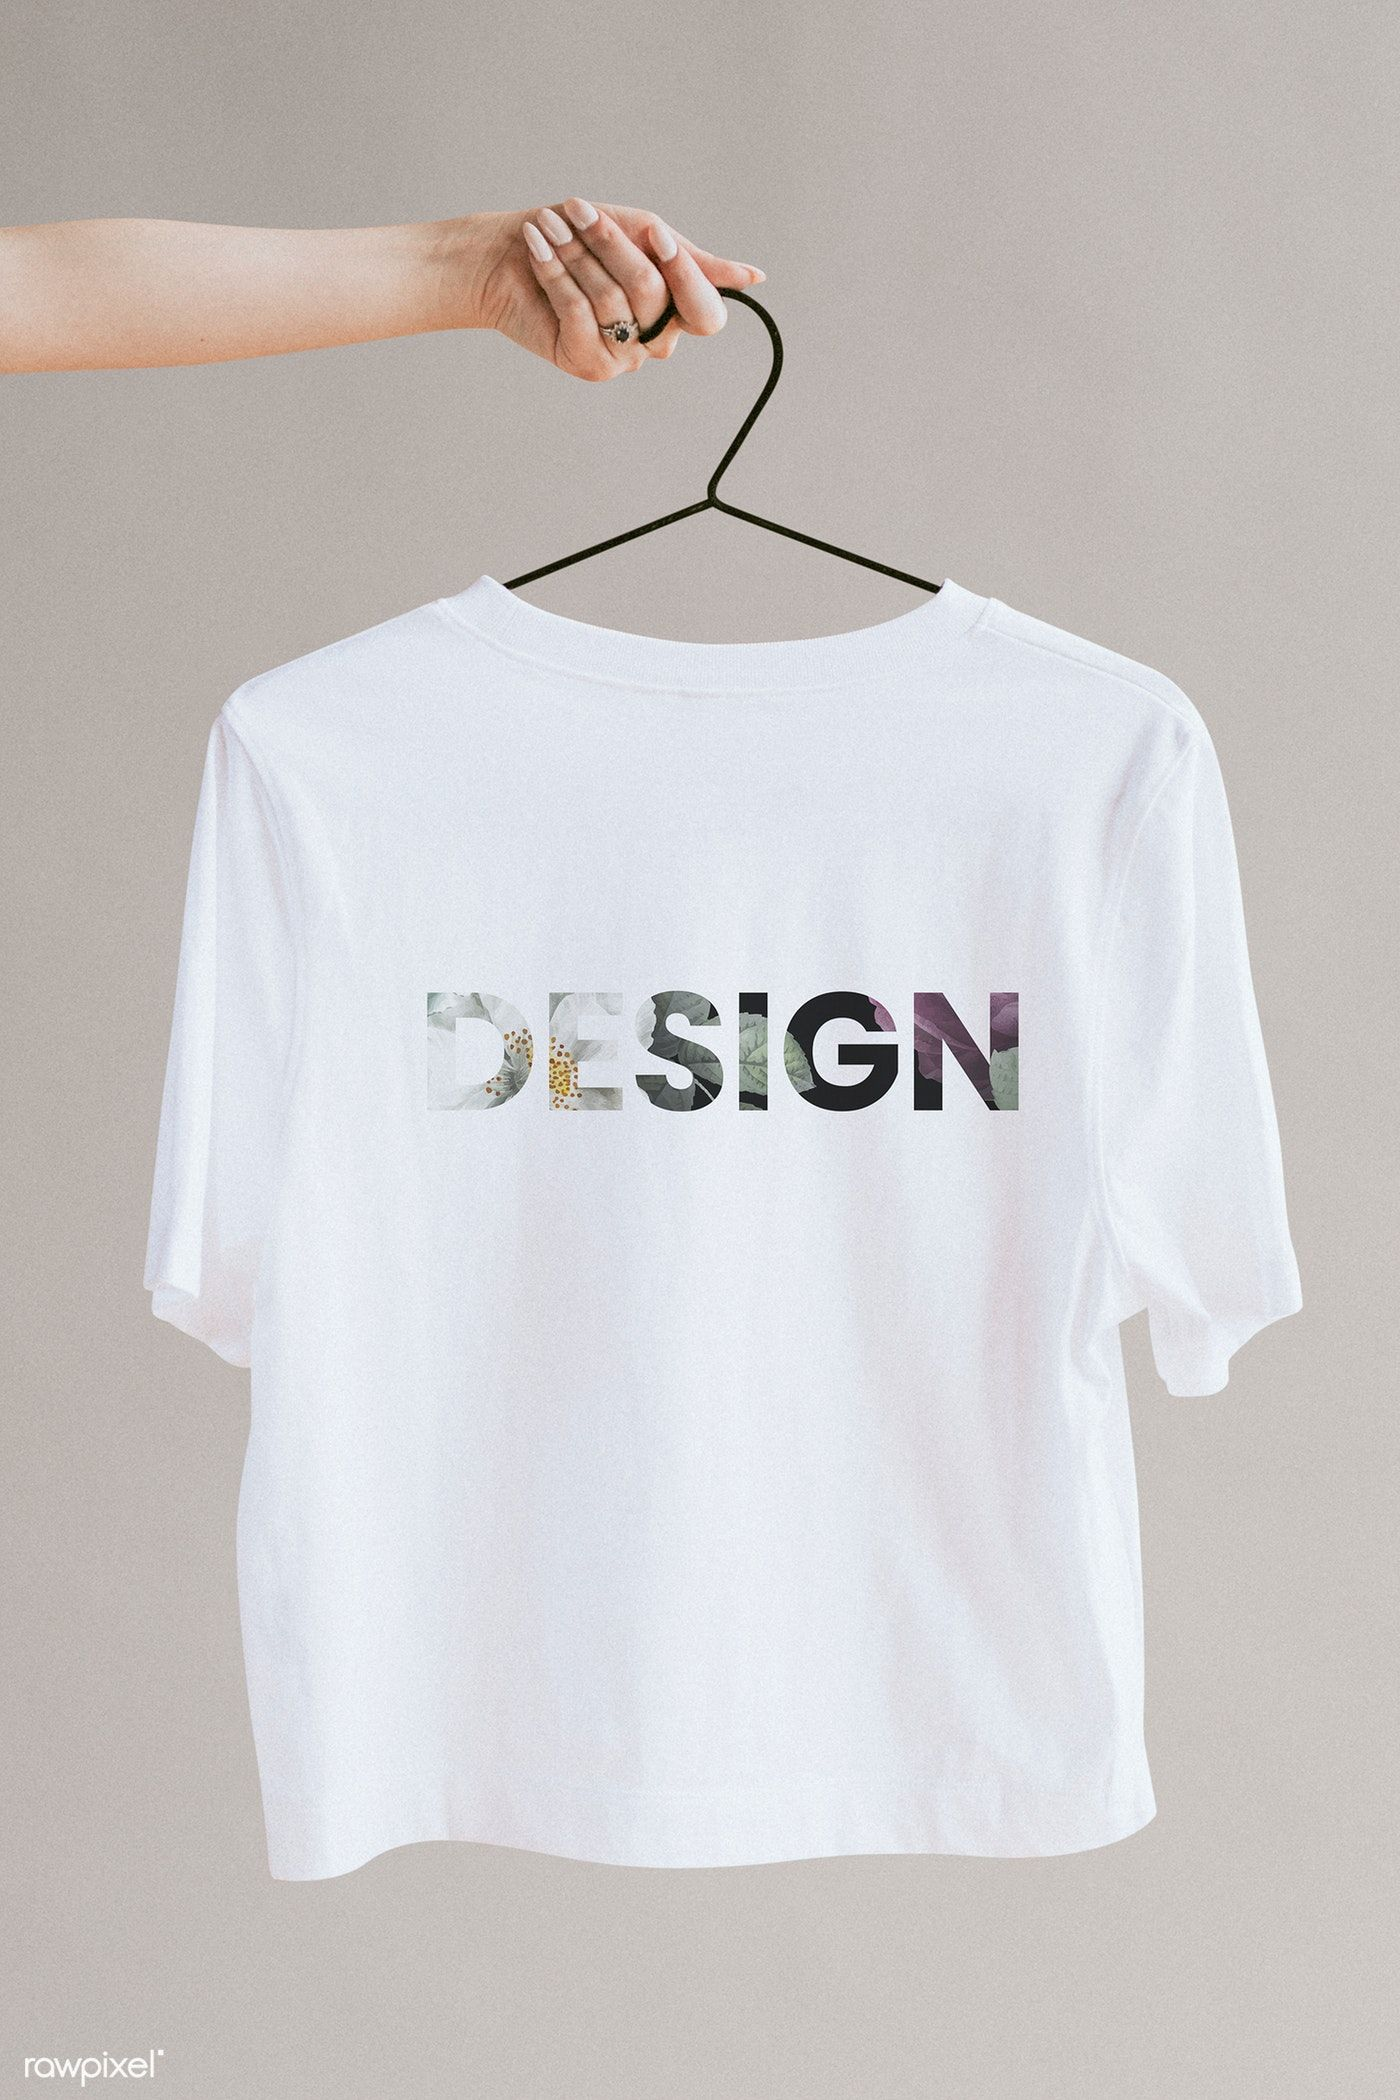 Download Download Premium Psd Of White Shirt In A Hanger Mockup 1216474 Clothing Mockup Preloved Clothes Fashion